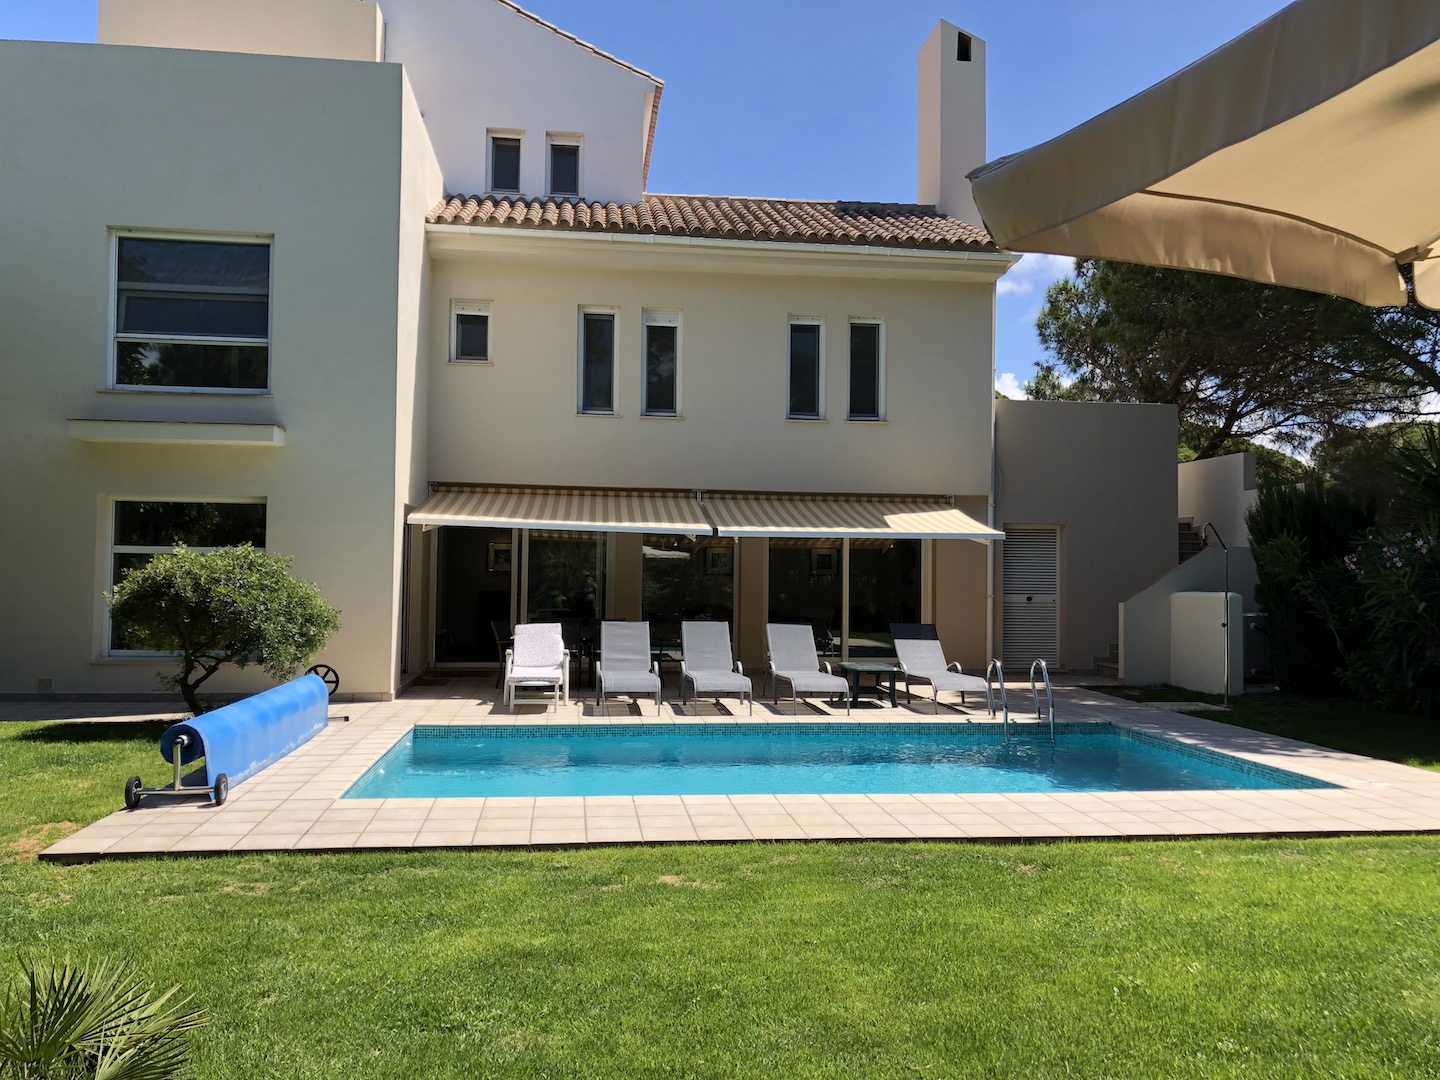 Villa, Pool and Loungers